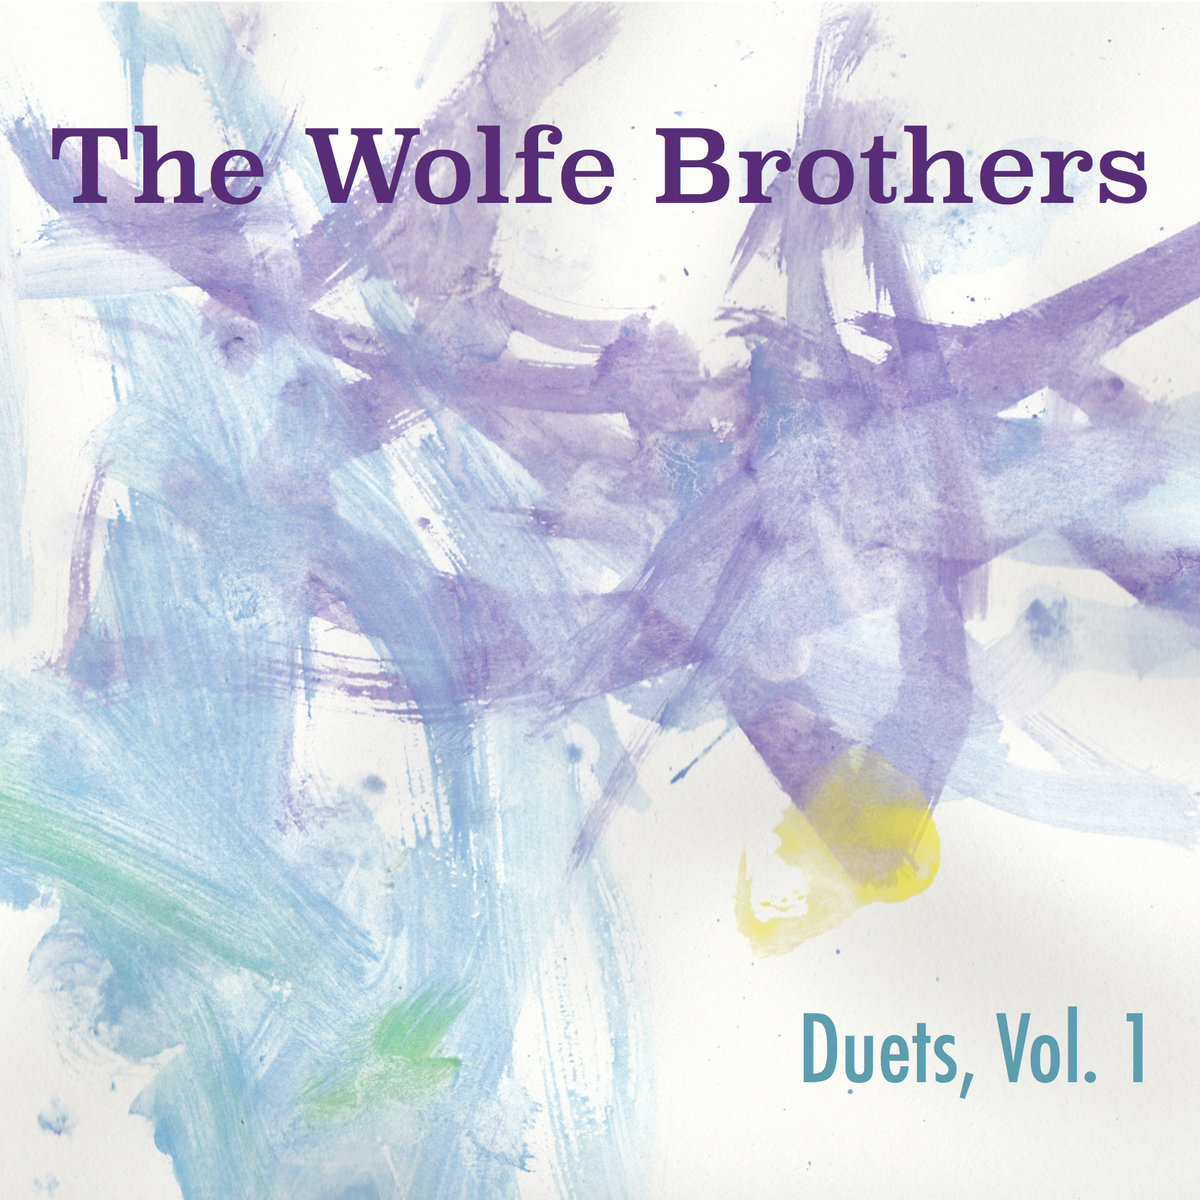 The Wolfe Brothers - Duets, Vol. 1 (2018)